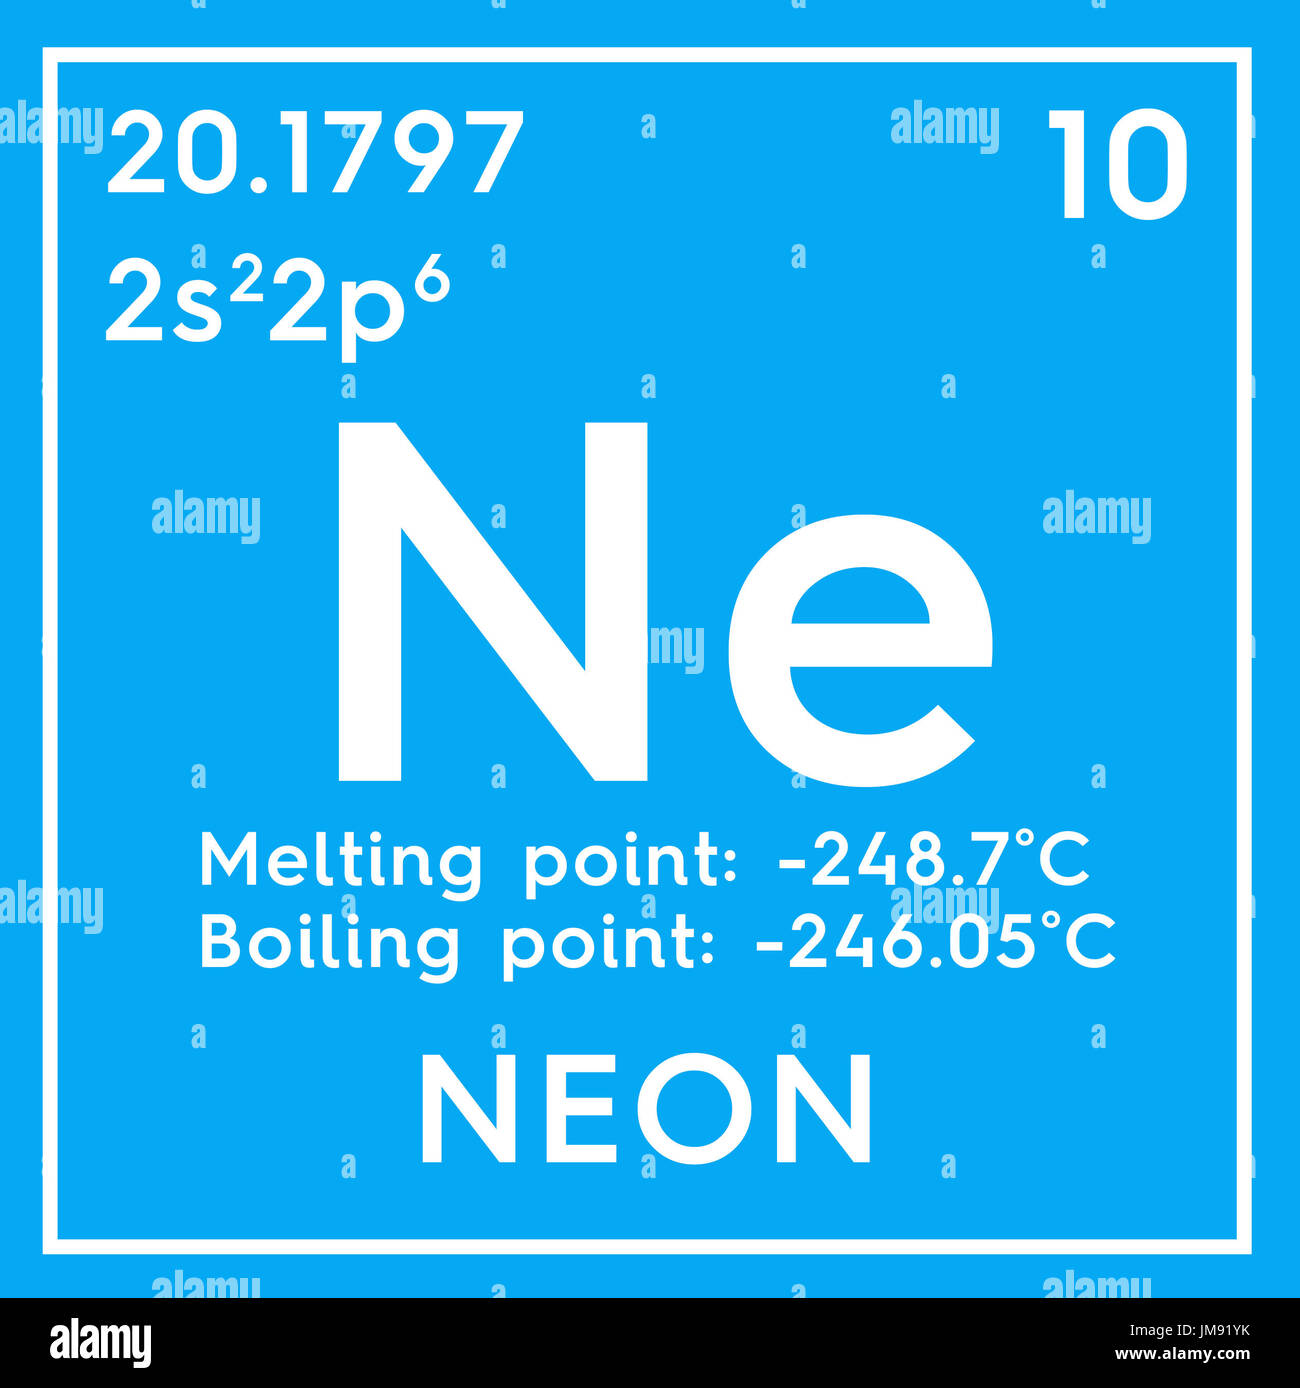 Neon noble gases chemical element of mendeleevs periodic table chemical element of mendeleevs periodic table neon in square cube creative concept gamestrikefo Images